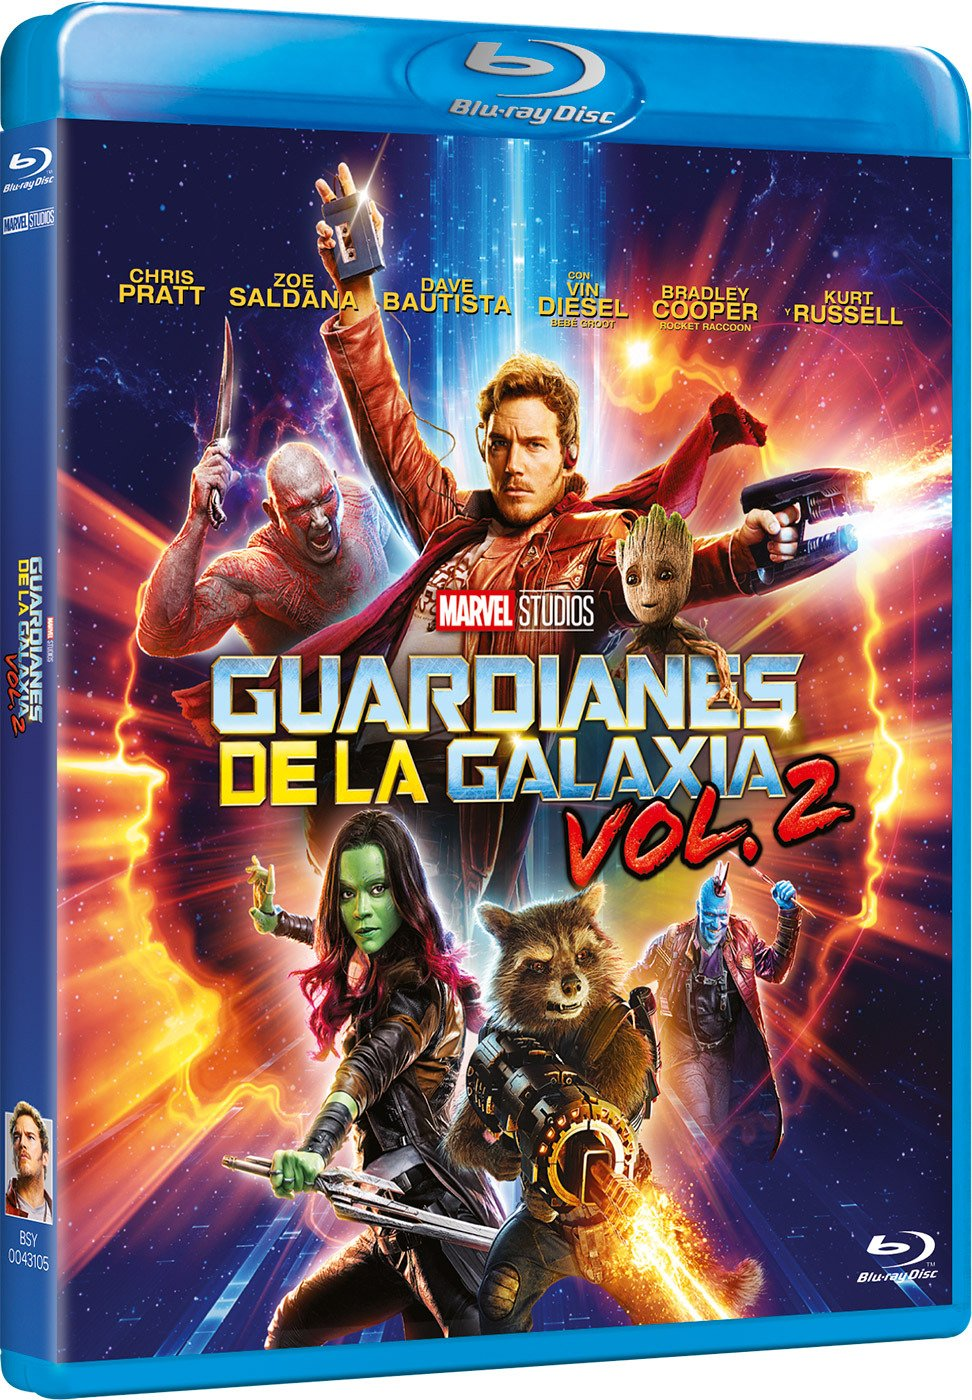 Guardianes De La Galaxia 2 [Blu-ray]: Amazon.es: Chris Pratt, Zoe Saldana, Dave Bautista, James Gunn, Chris Pratt, Zoe Saldana: Cine y Series TV